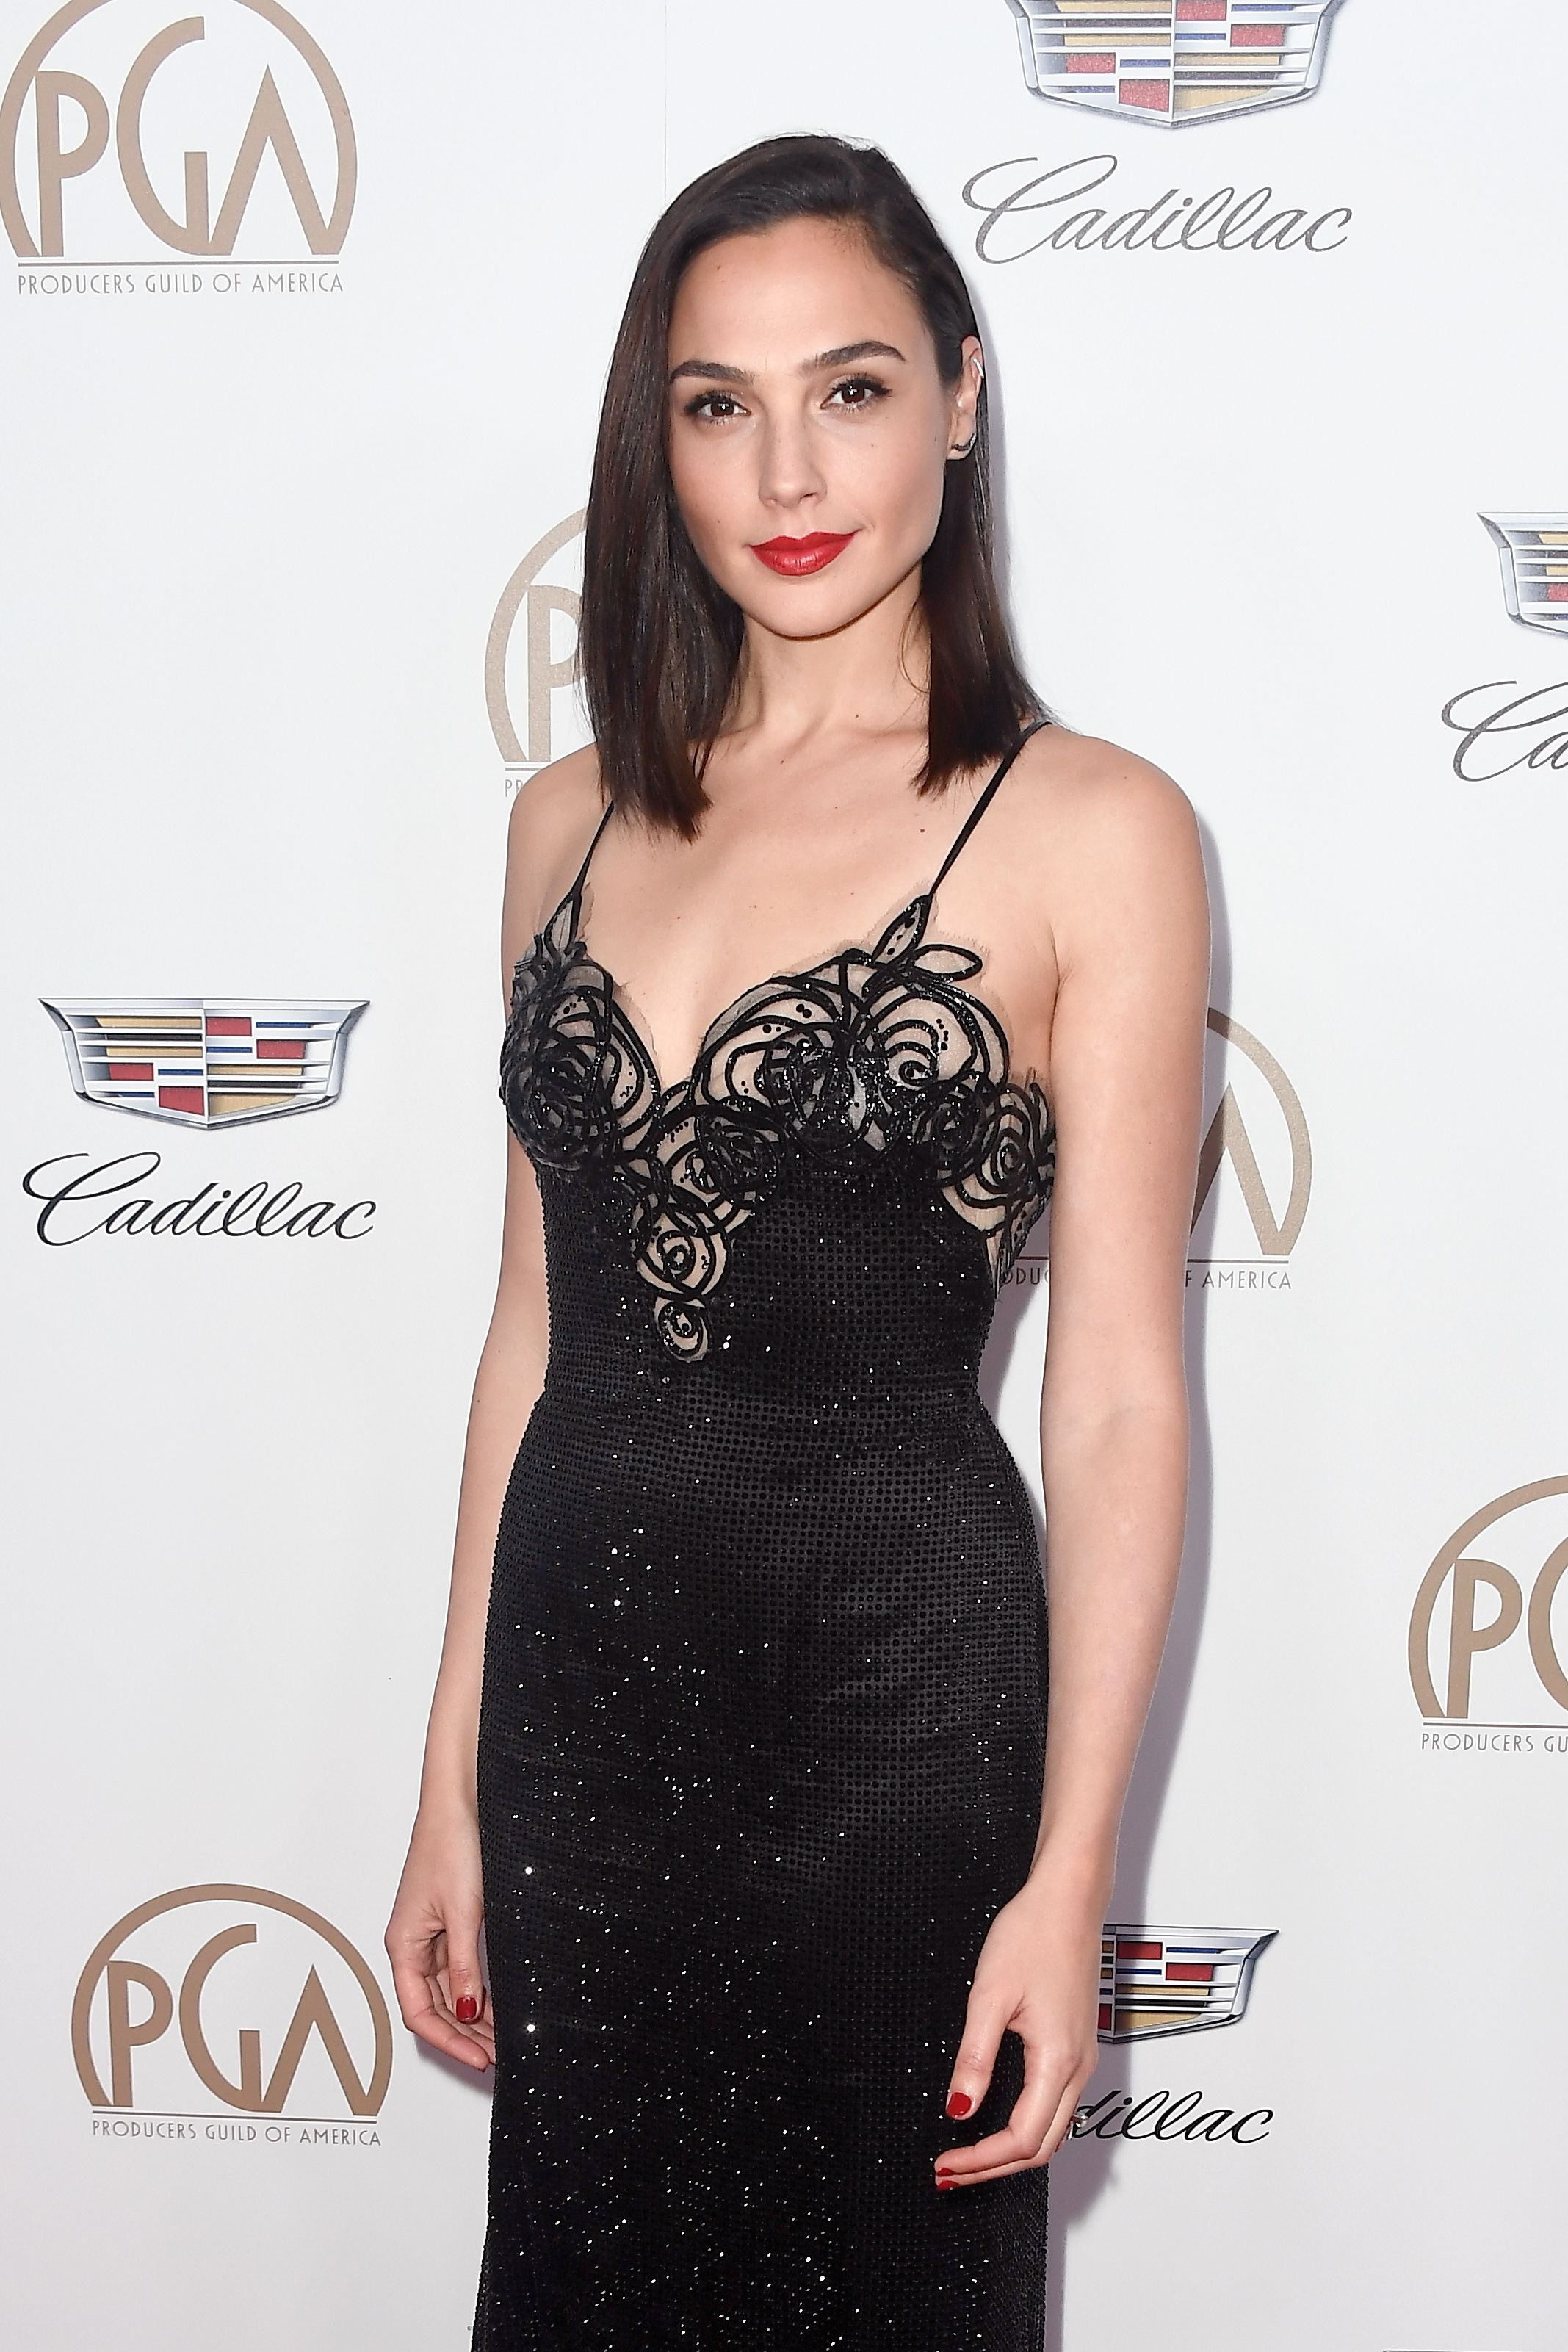 Gal Gadot at the 29th Annual Producers Guild Awards in 2018 in Beverly Hills, California | Source: Getty Images